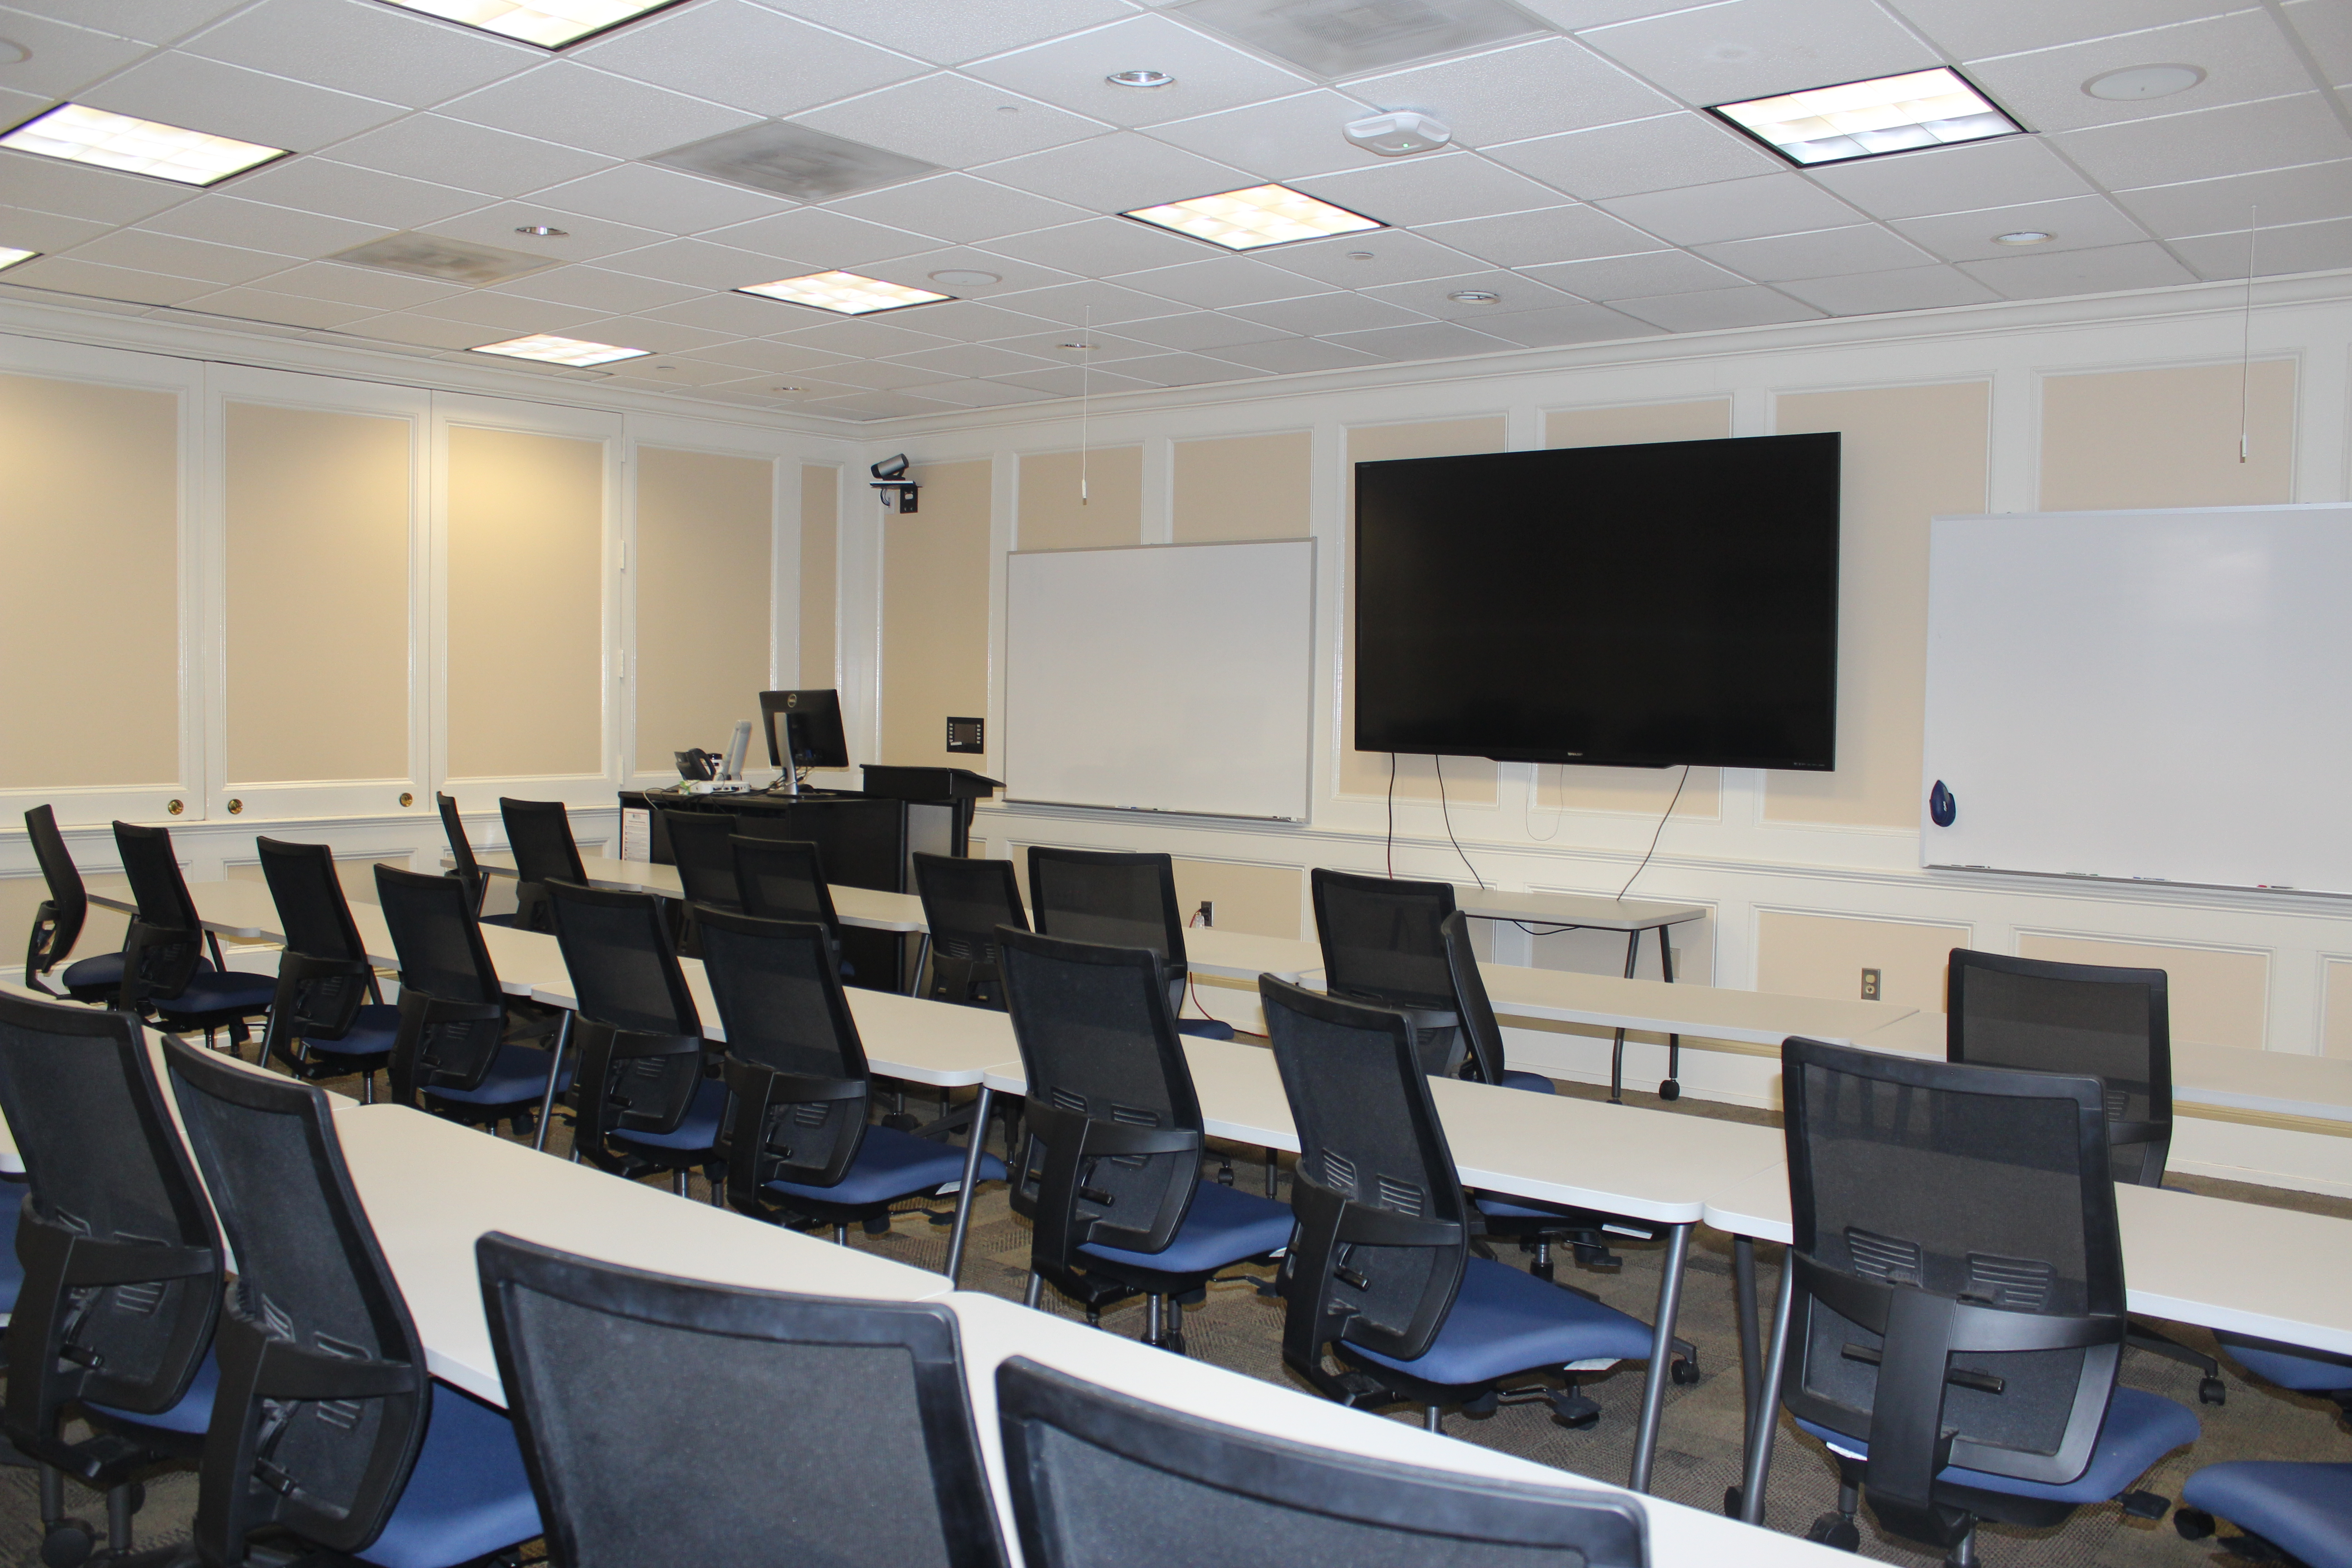 Atkinson 110 classroom showing tables, chairs and front of the room displays